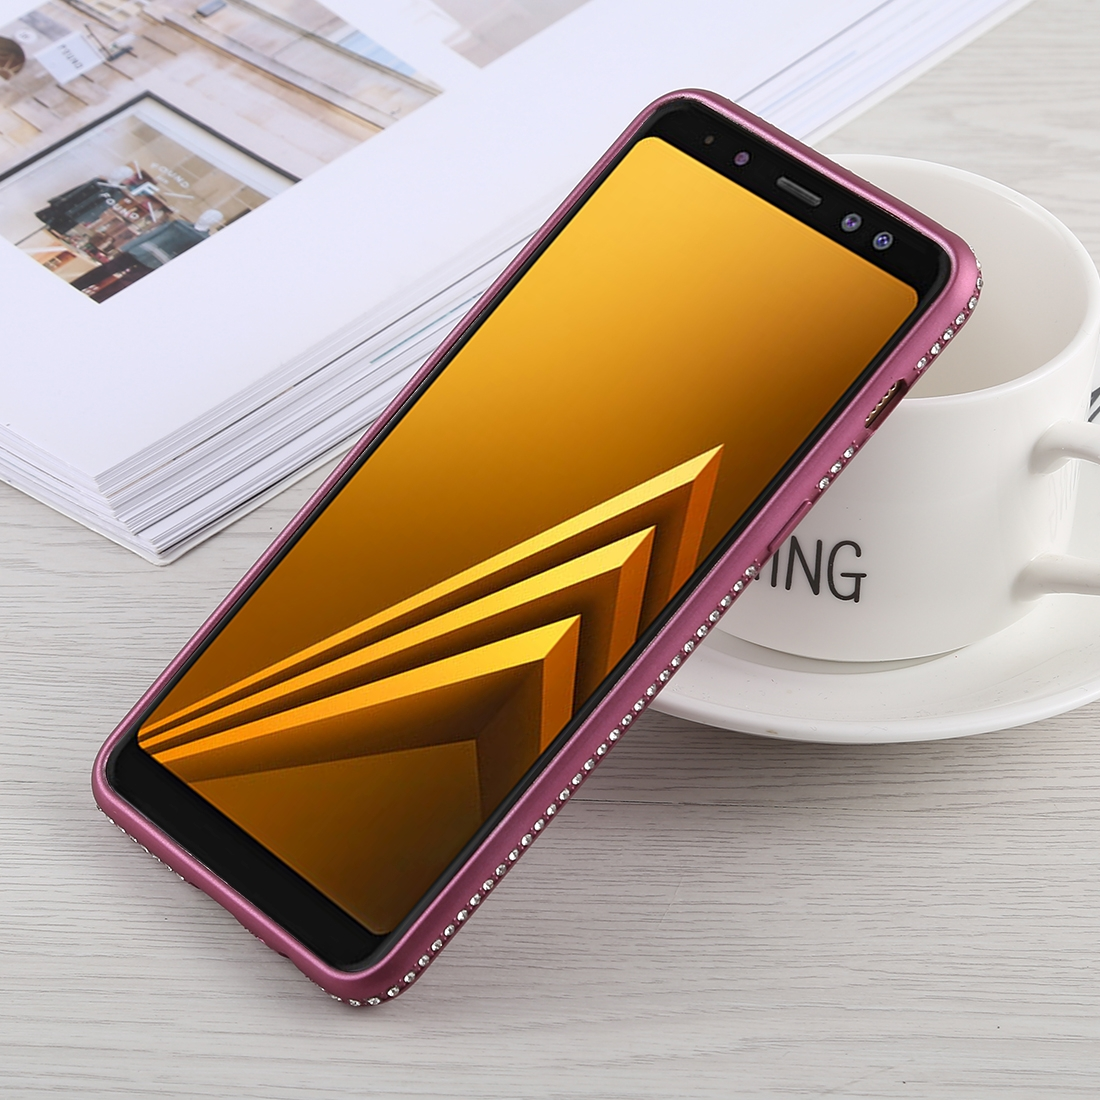 Crystal Decor Sides Smooth Surface Soft TPU Protective Back Case for Galaxy A8 (2018) (Purple)